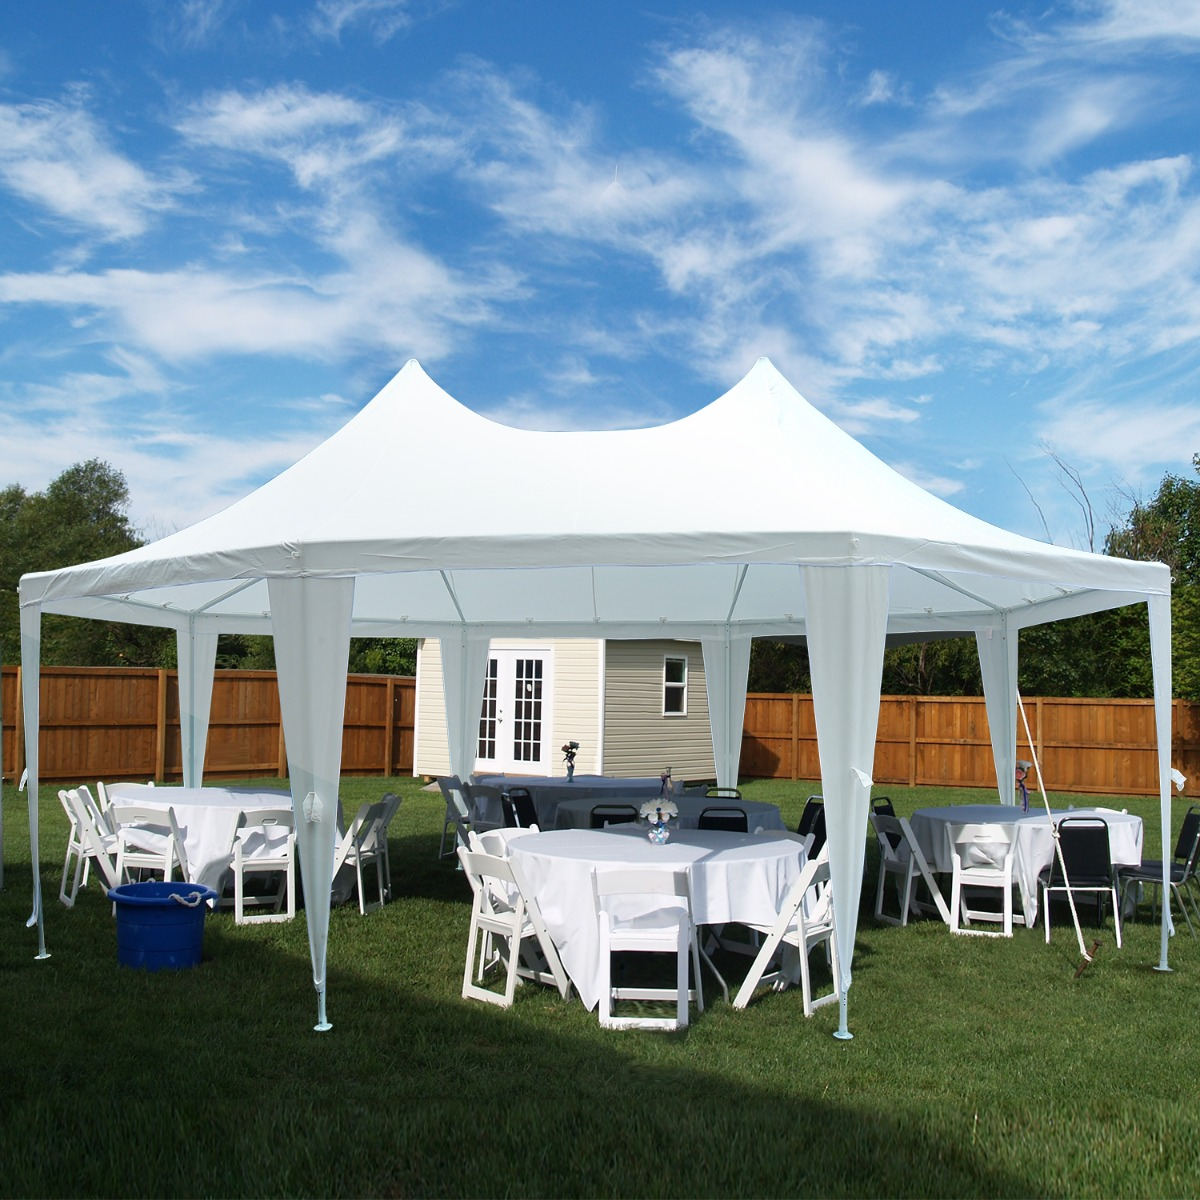 Party Tent Outsunny 22.3ft Octagonal Party Tent Wedding Shelter Outdoor White